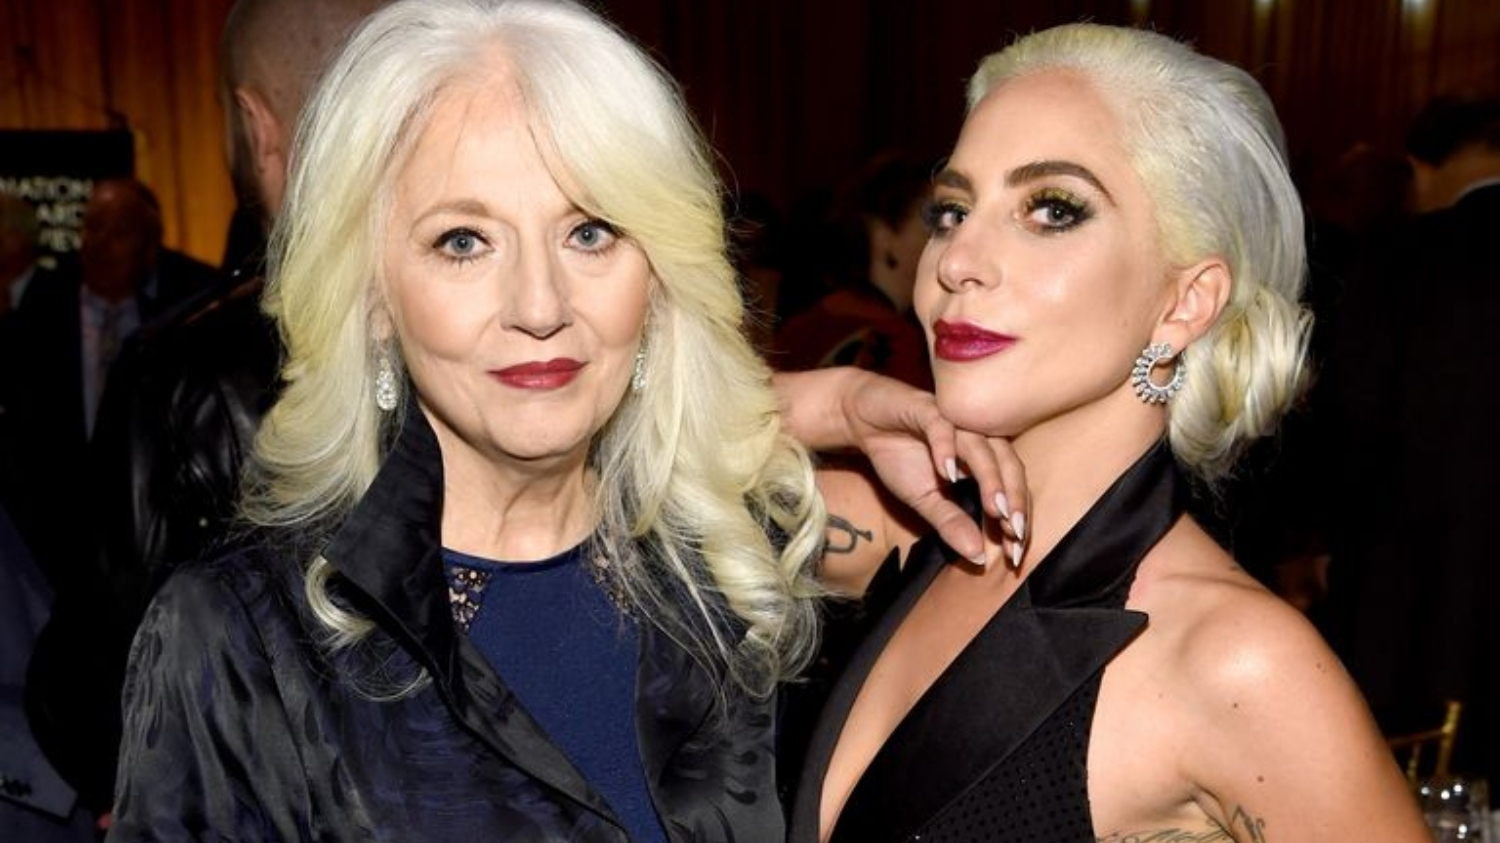 Lady Gaga's Mother Opens Up About Her Pop Star Daughter's Mental Health Journey